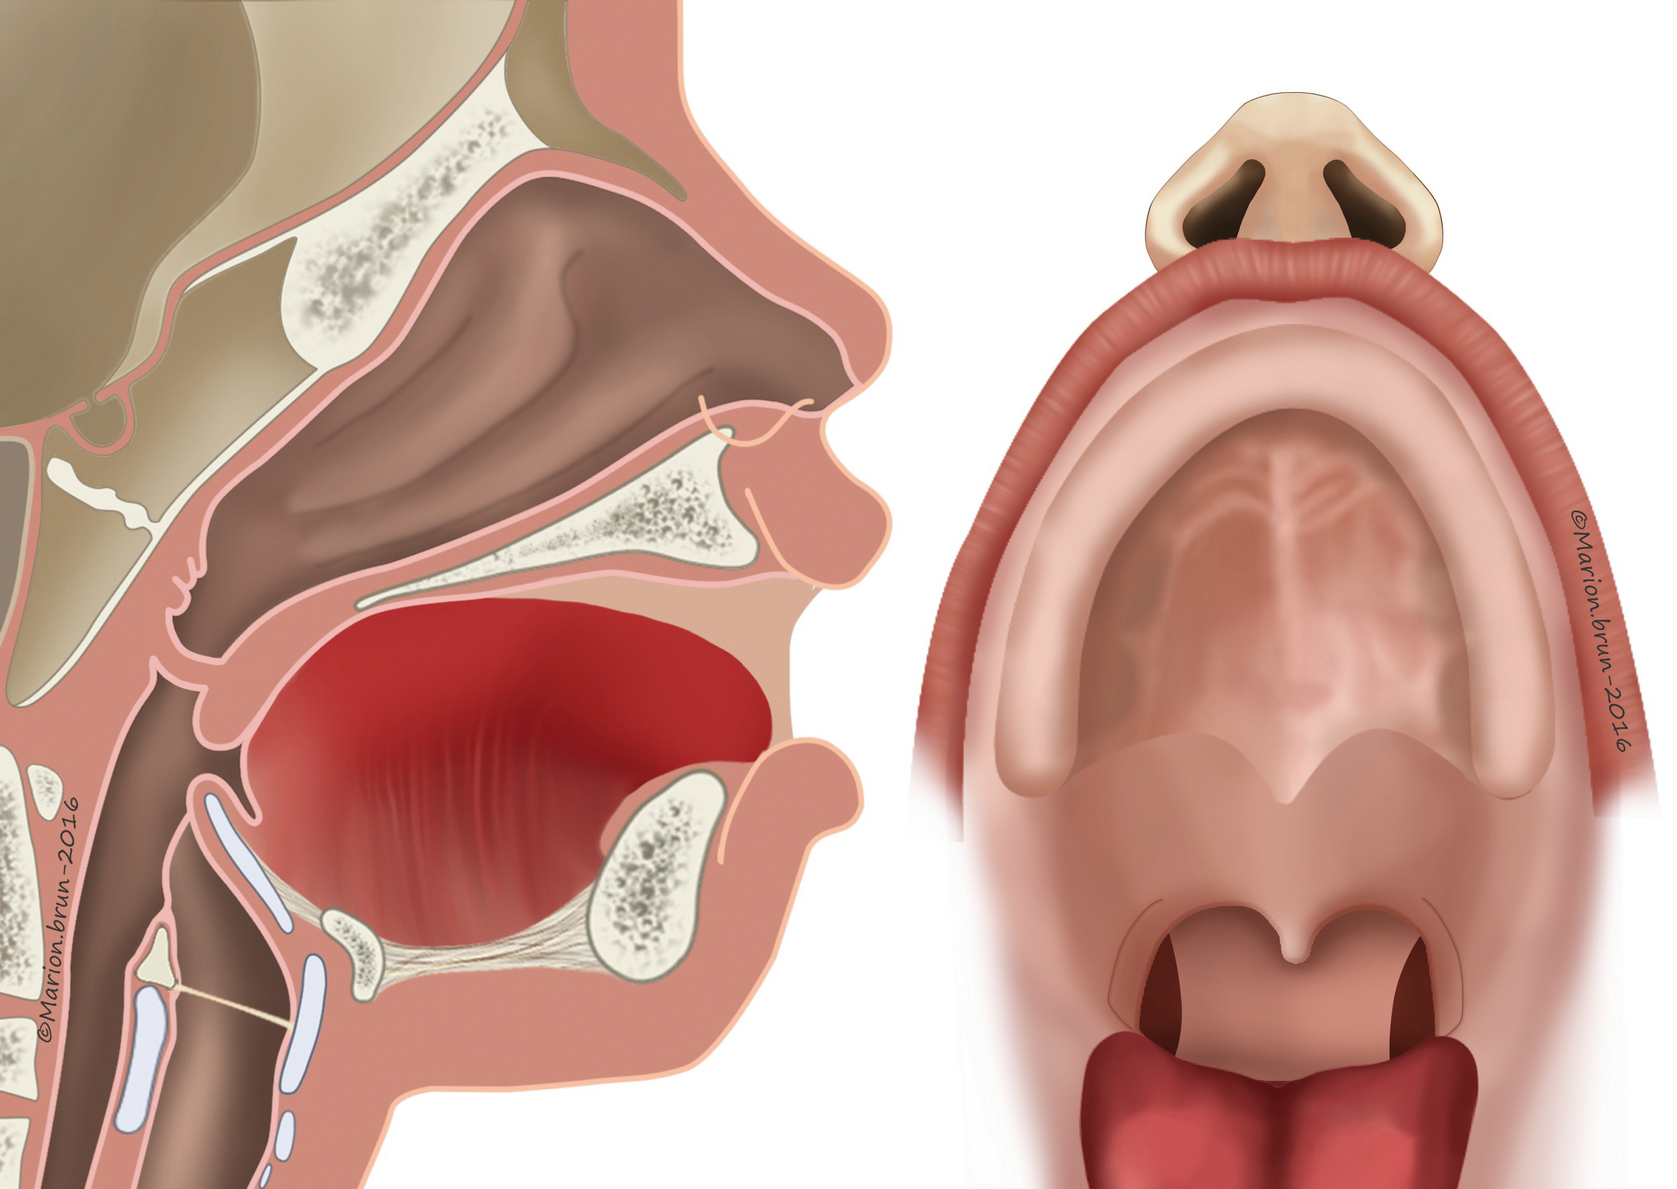 Facial Cleft and Pierre Robin Sequence | SpringerLink